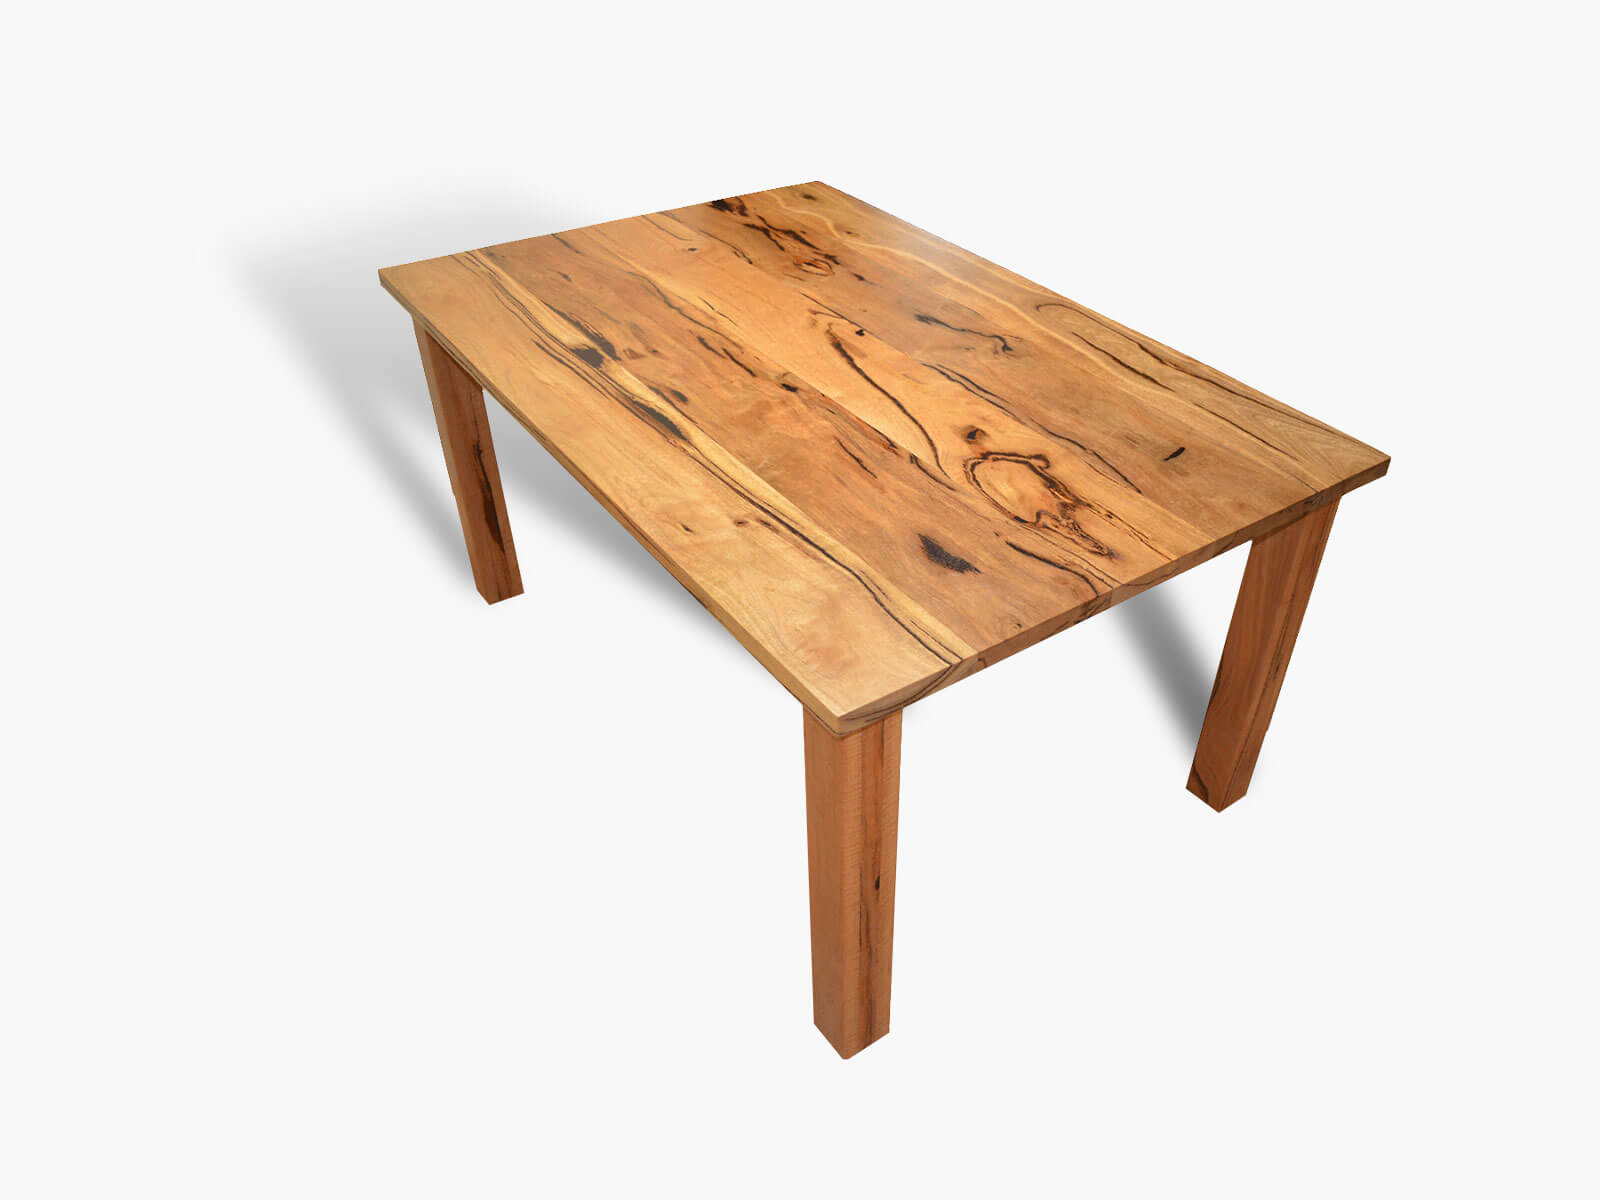 Stirling-Dining Timber Furniture